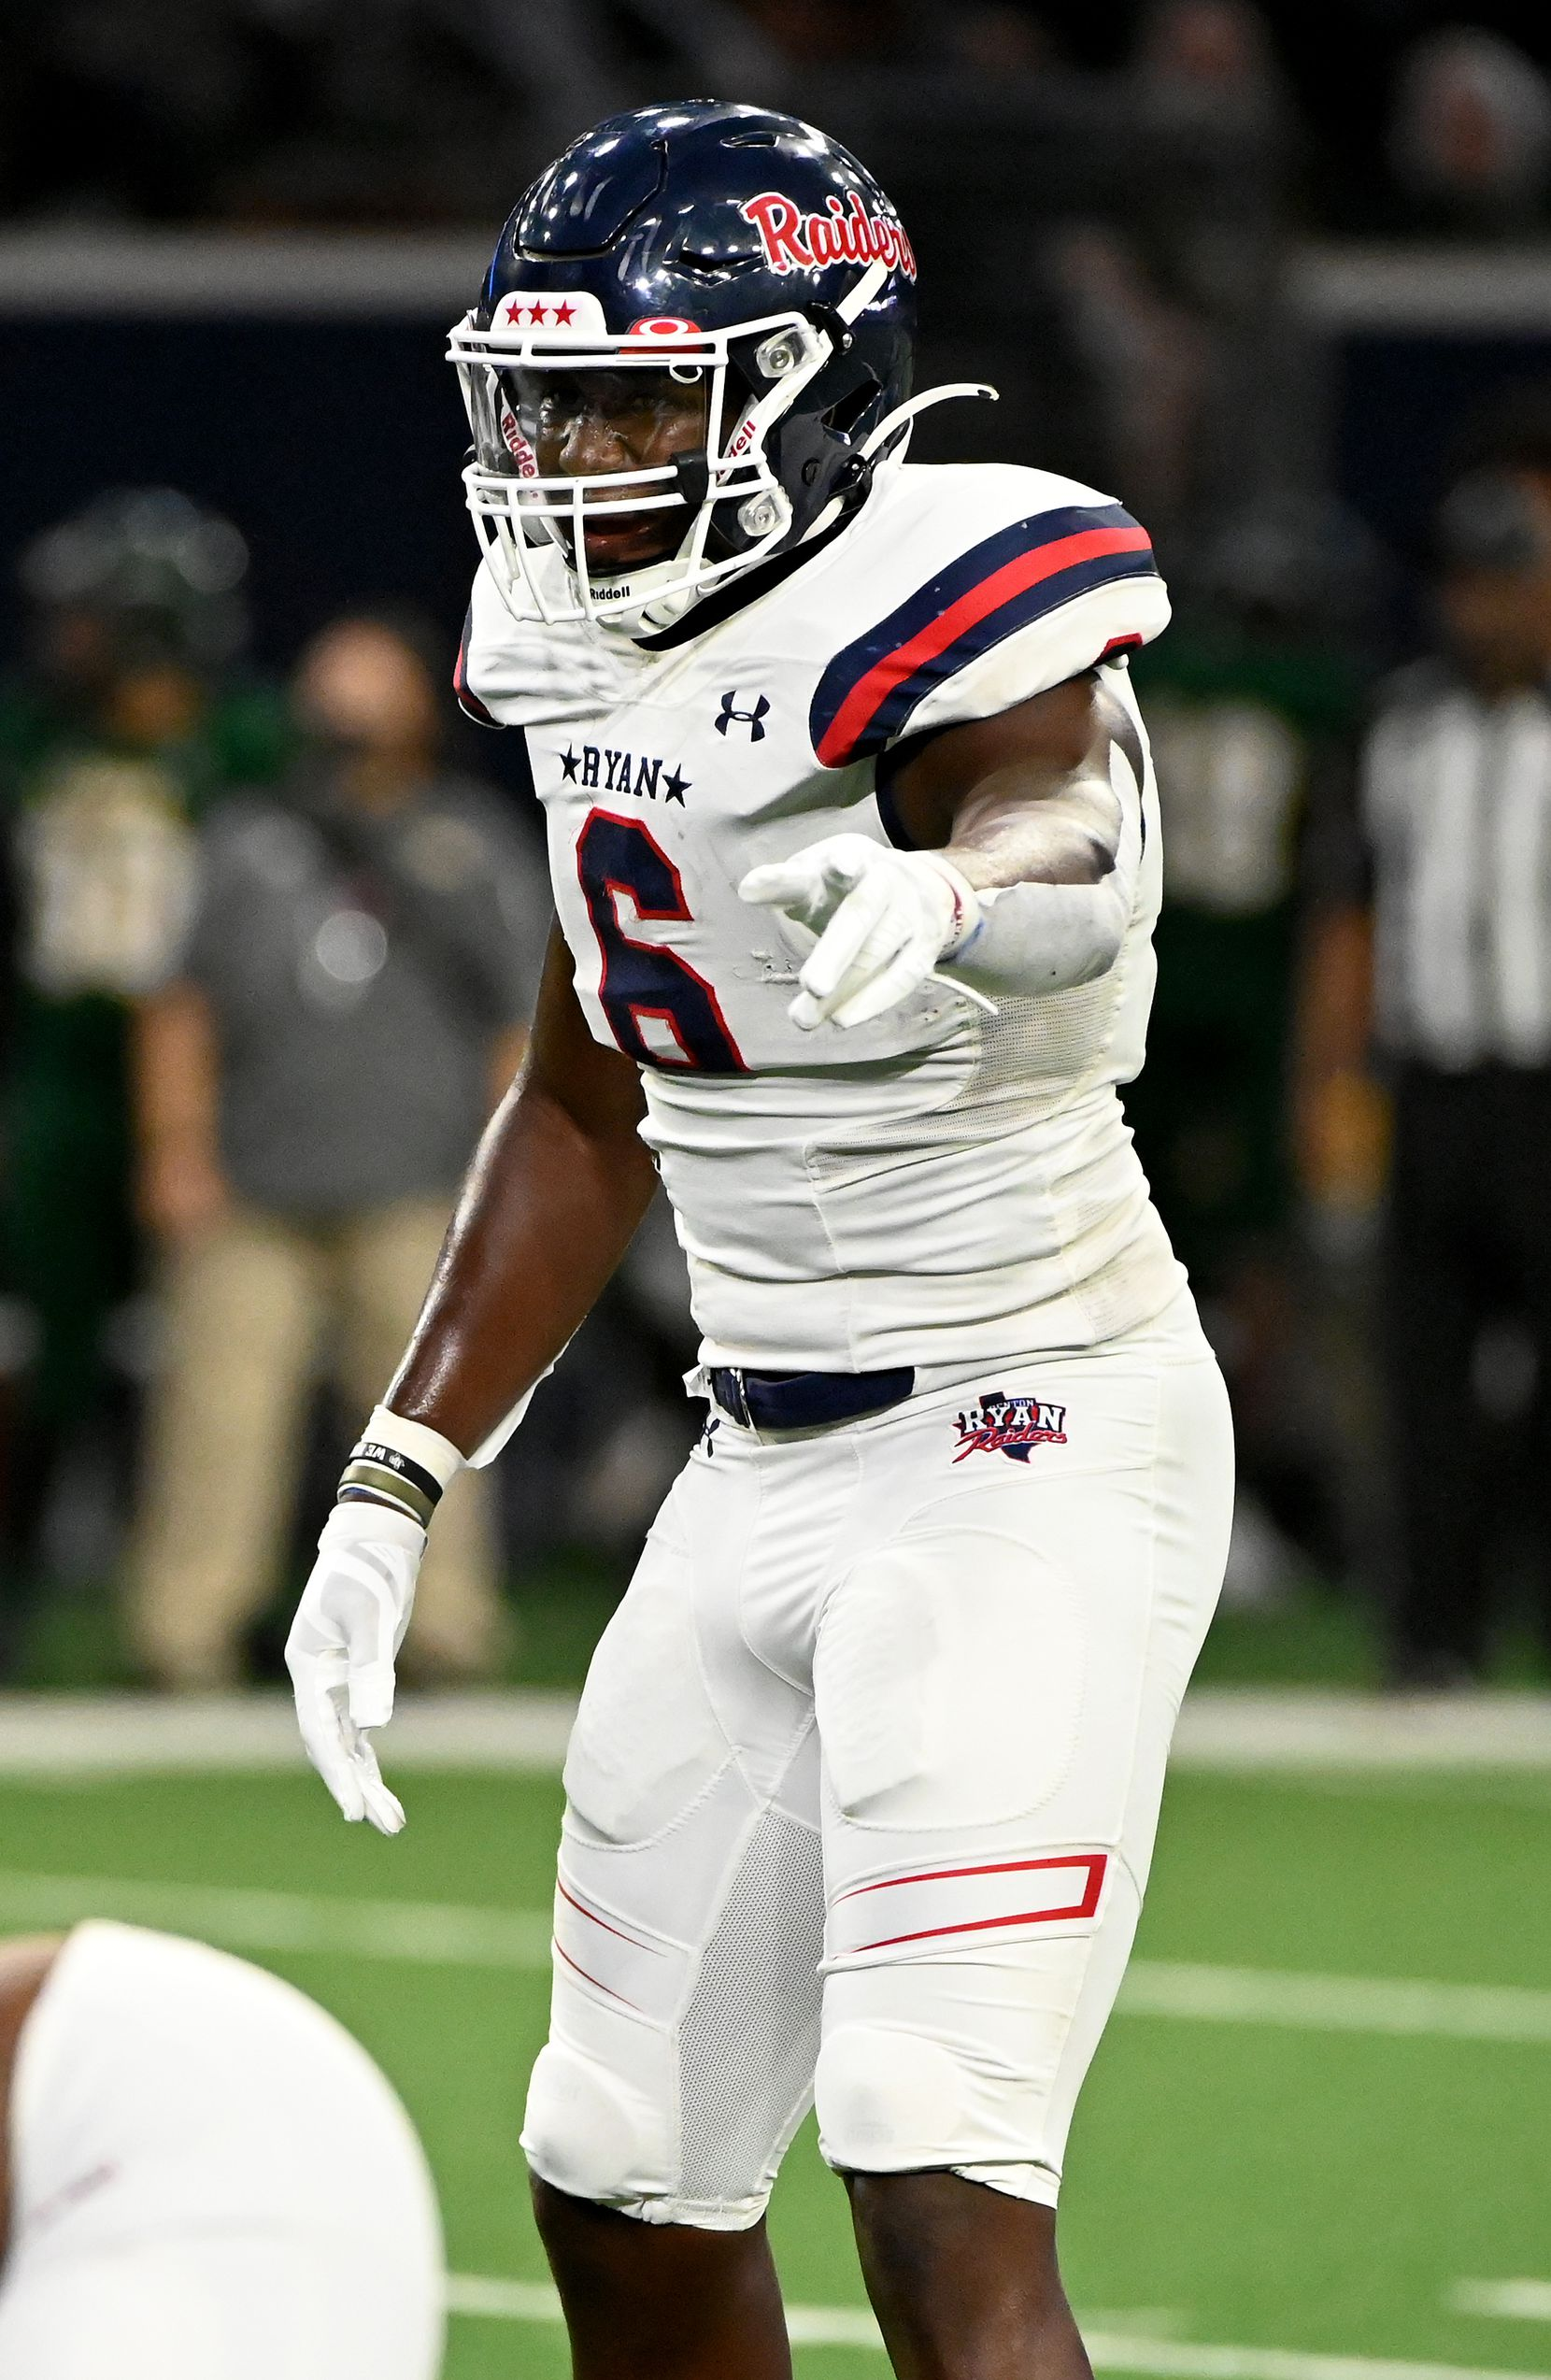 Anthony Hill Jr. lines up on defense in the first half during a high school football game between Longview and Denton Ryan, Saturday, Aug. 28, 2021, in Frisco, Texas. (Matt Strasen/Special Contributor)